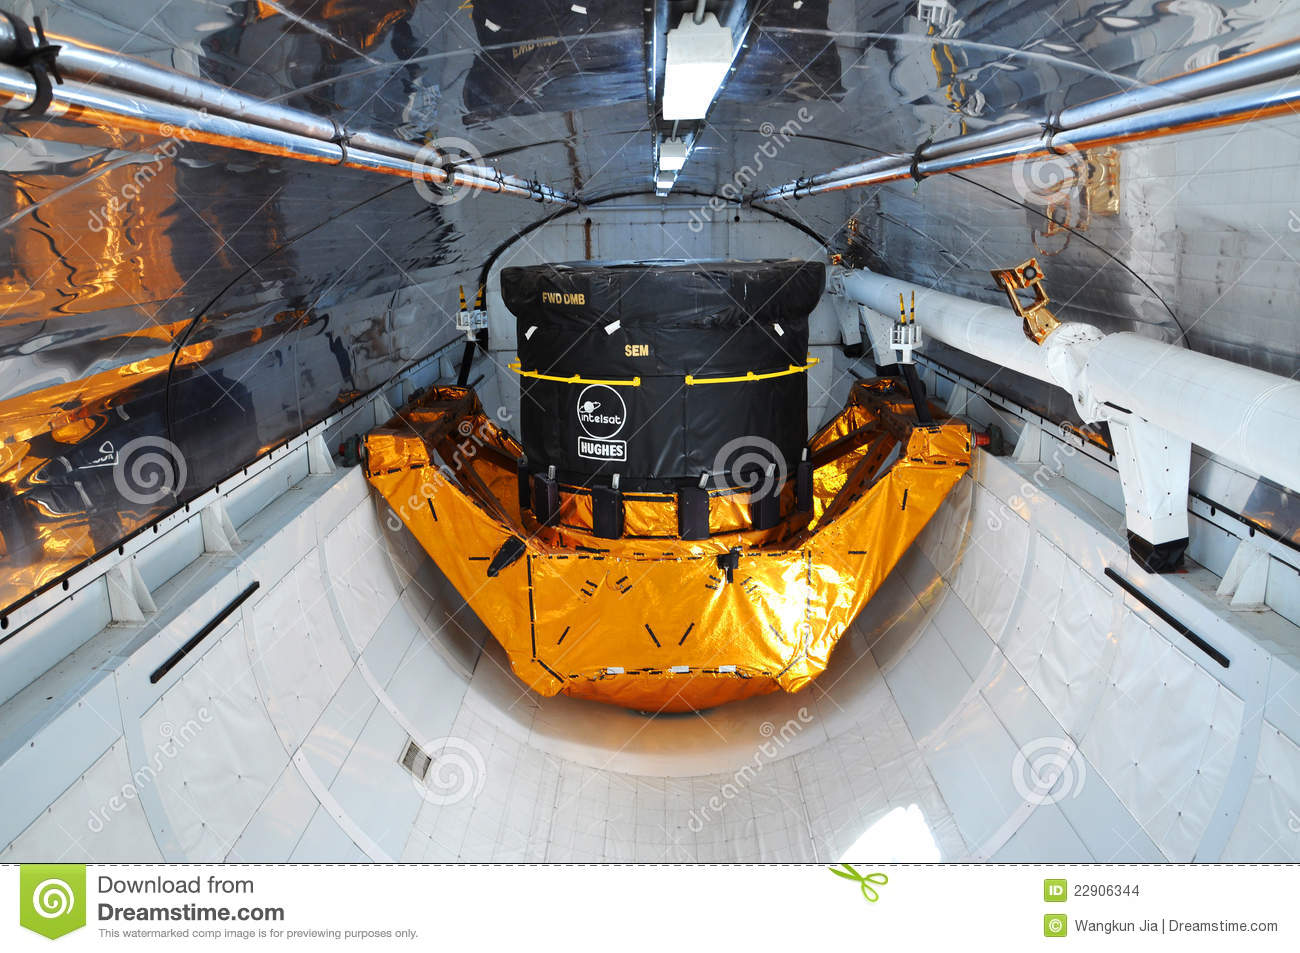 space shuttle explorer is real - photo #44